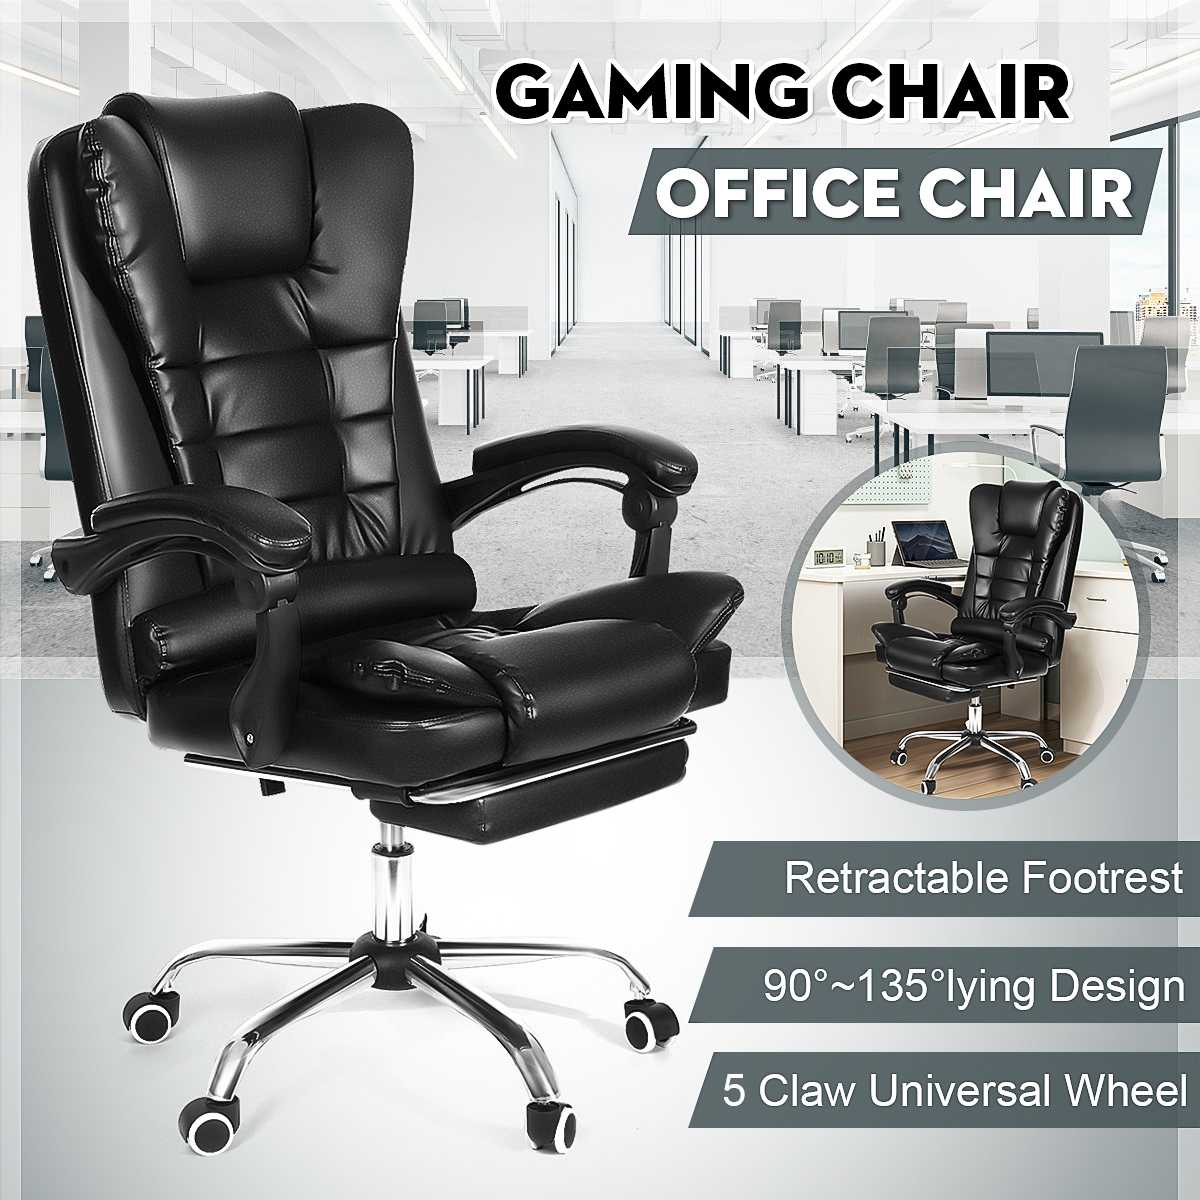 H25473f475bb9407585347329c52ed827Z - Office Chair WCG Computer Gaming Chair Reclining Armchair with Footrest Internet Cafe Gamer Chair Office Furniture Pink Chair